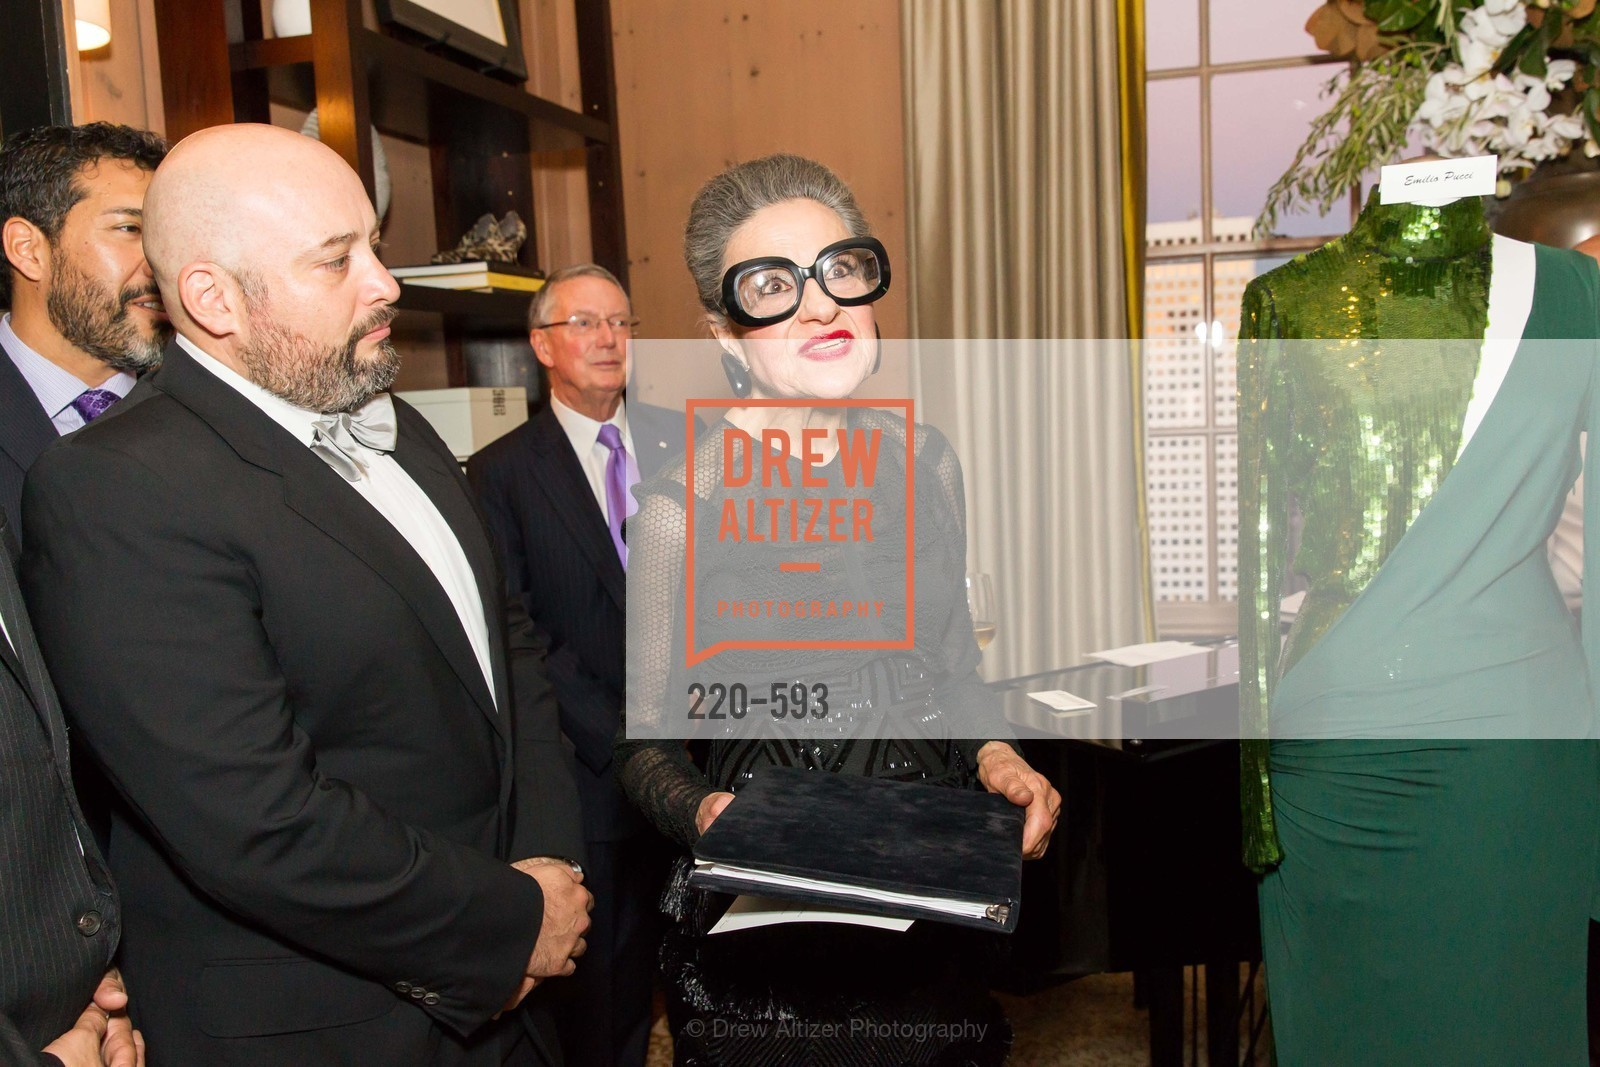 Alfredo Pedroza, Joy Venturini Bianchi, COUTURE FOR A CAUSE, US, October 5th, 2014,Drew Altizer, Drew Altizer Photography, full-service agency, private events, San Francisco photographer, photographer california